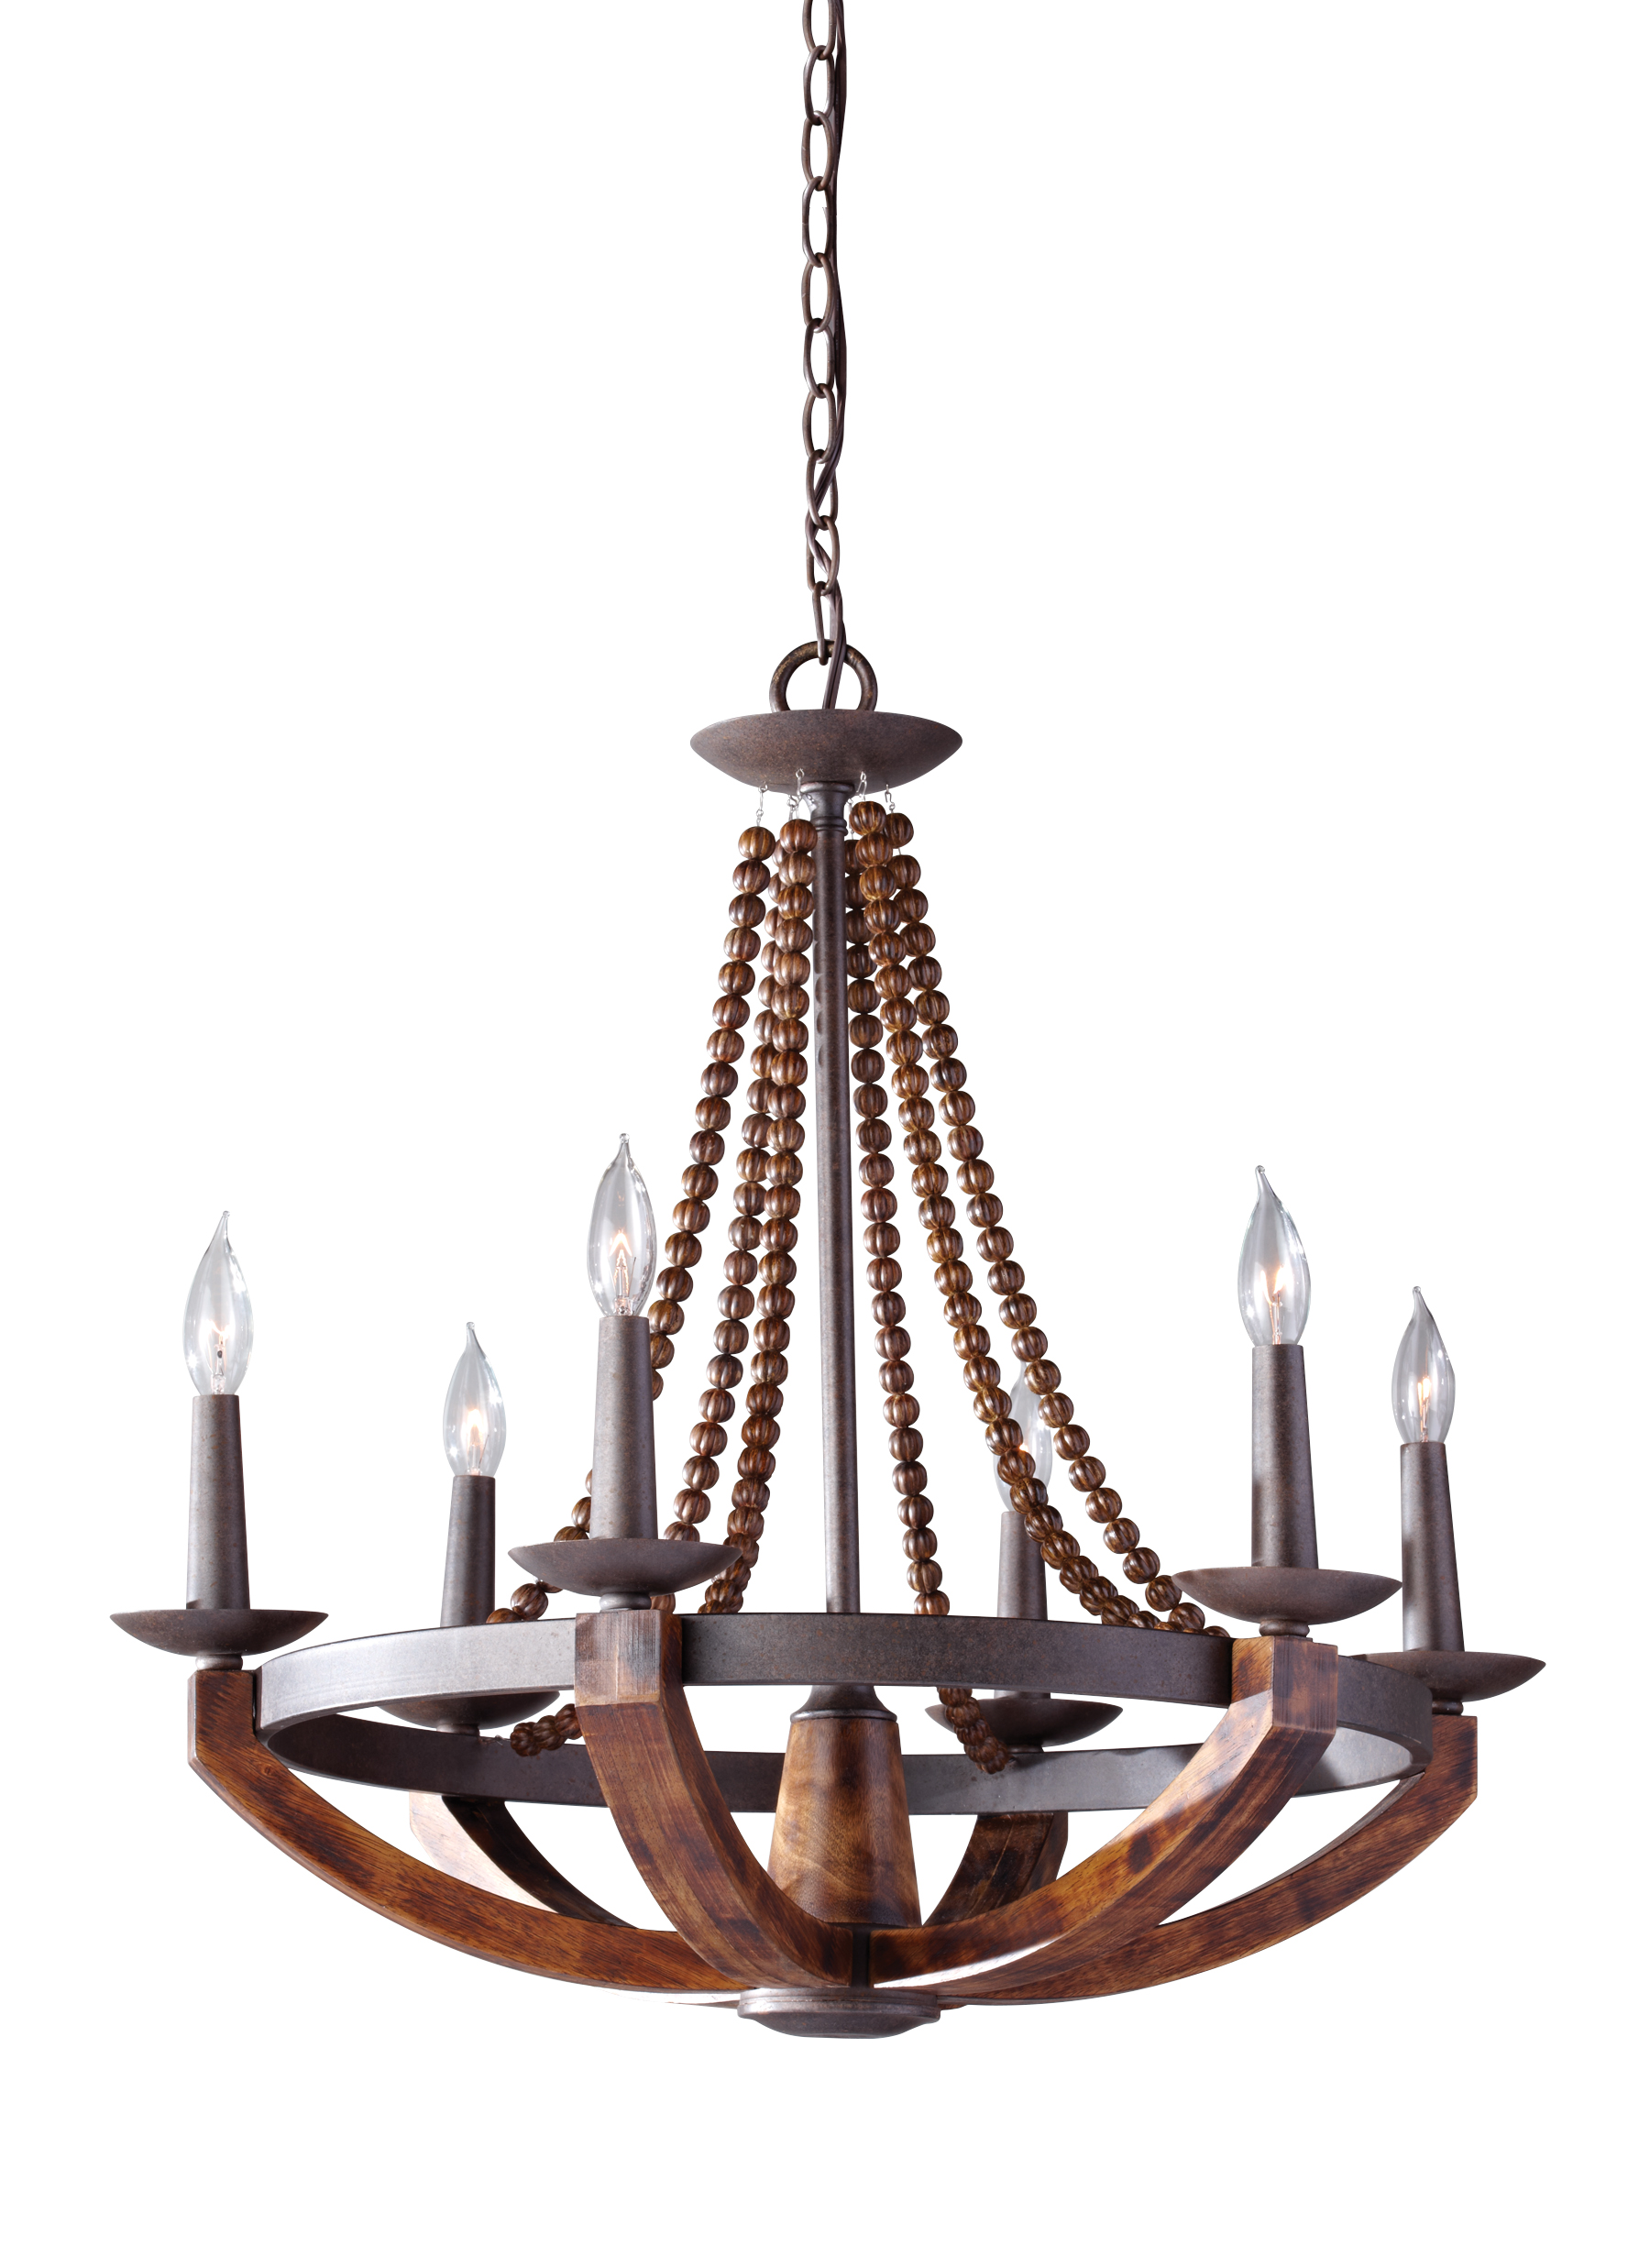 F2749 6RI BWD 6 Light Single Tier Chandelier Rustic Iron